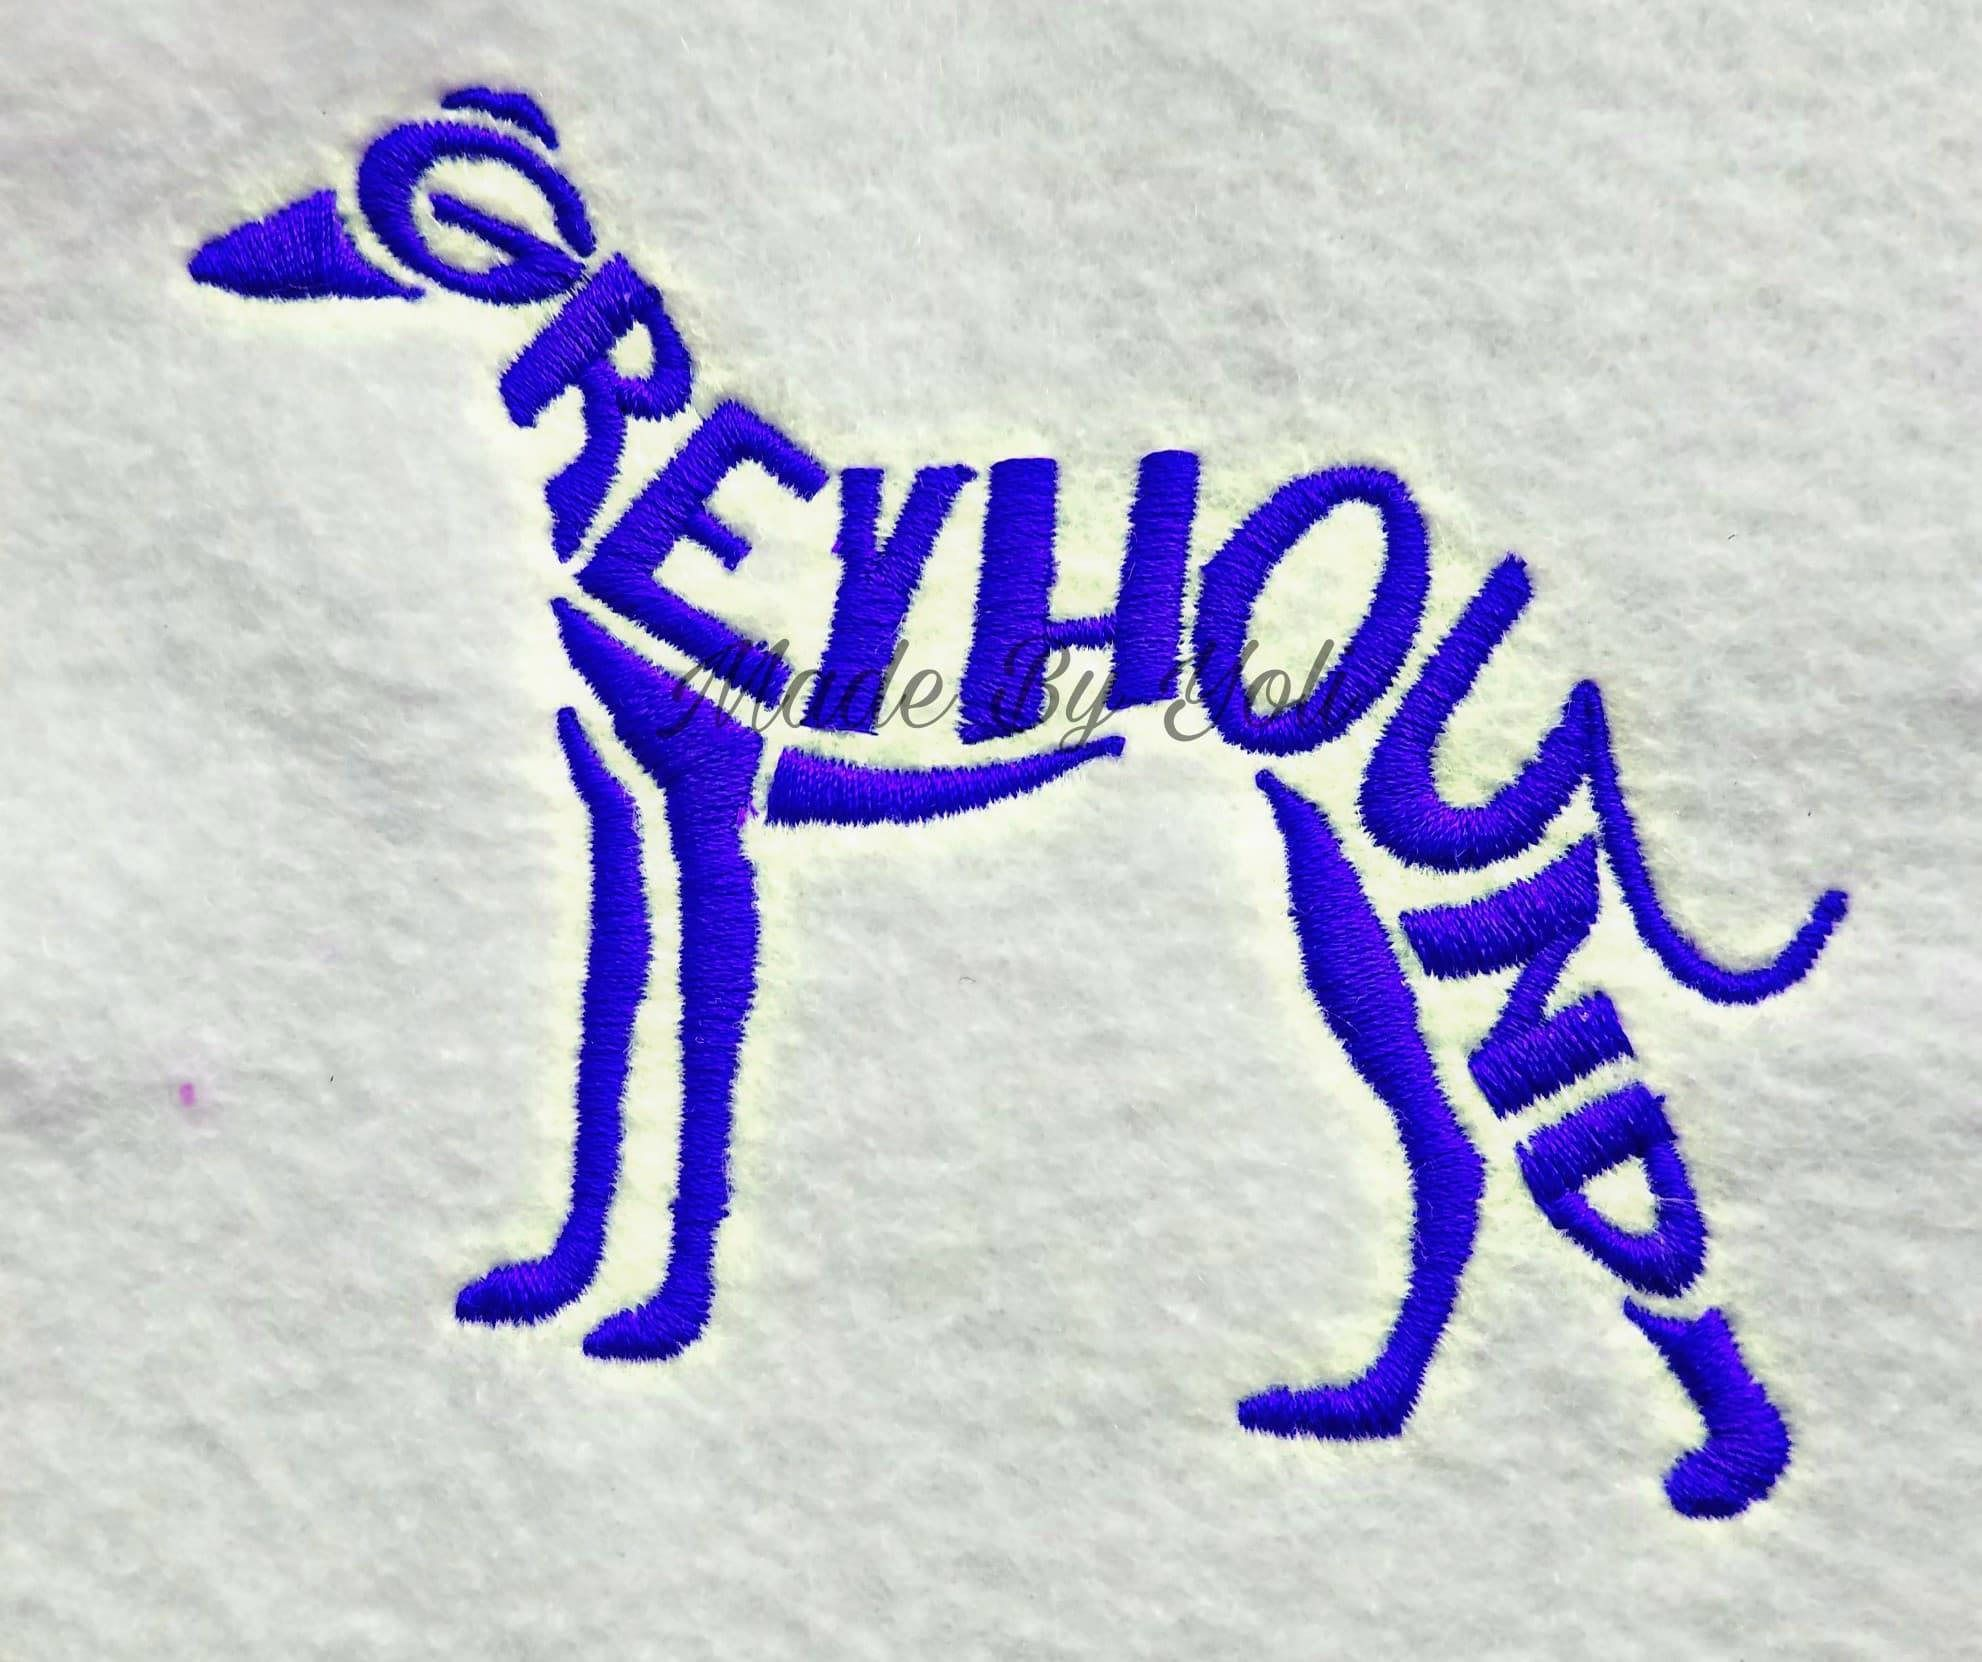 Embroidery Design Digitized Greyhound Text Fill 5 x 7 by MadeByYoli